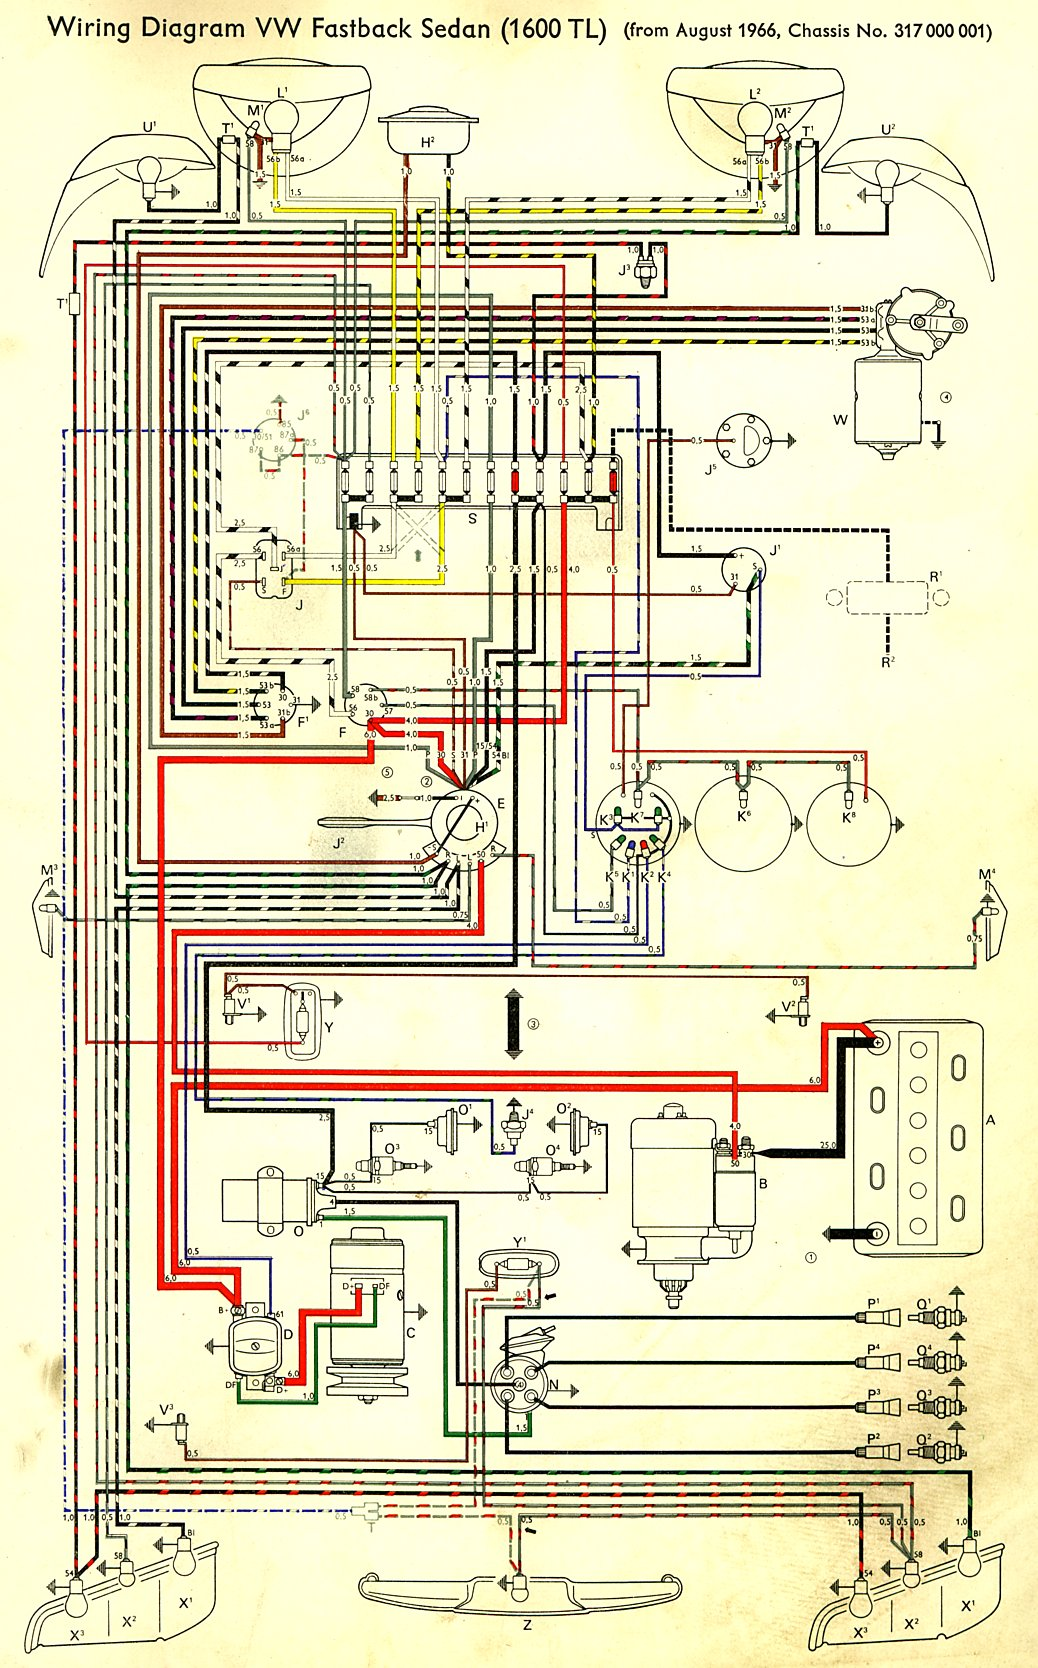 Vw 1600 Engine Wiring Diagram Just Another Blog Type 1 Volkswagen 3 Schema Diagrams Rh 66 Justanotherbeautyblog De 1974 Super Beetle Airplane